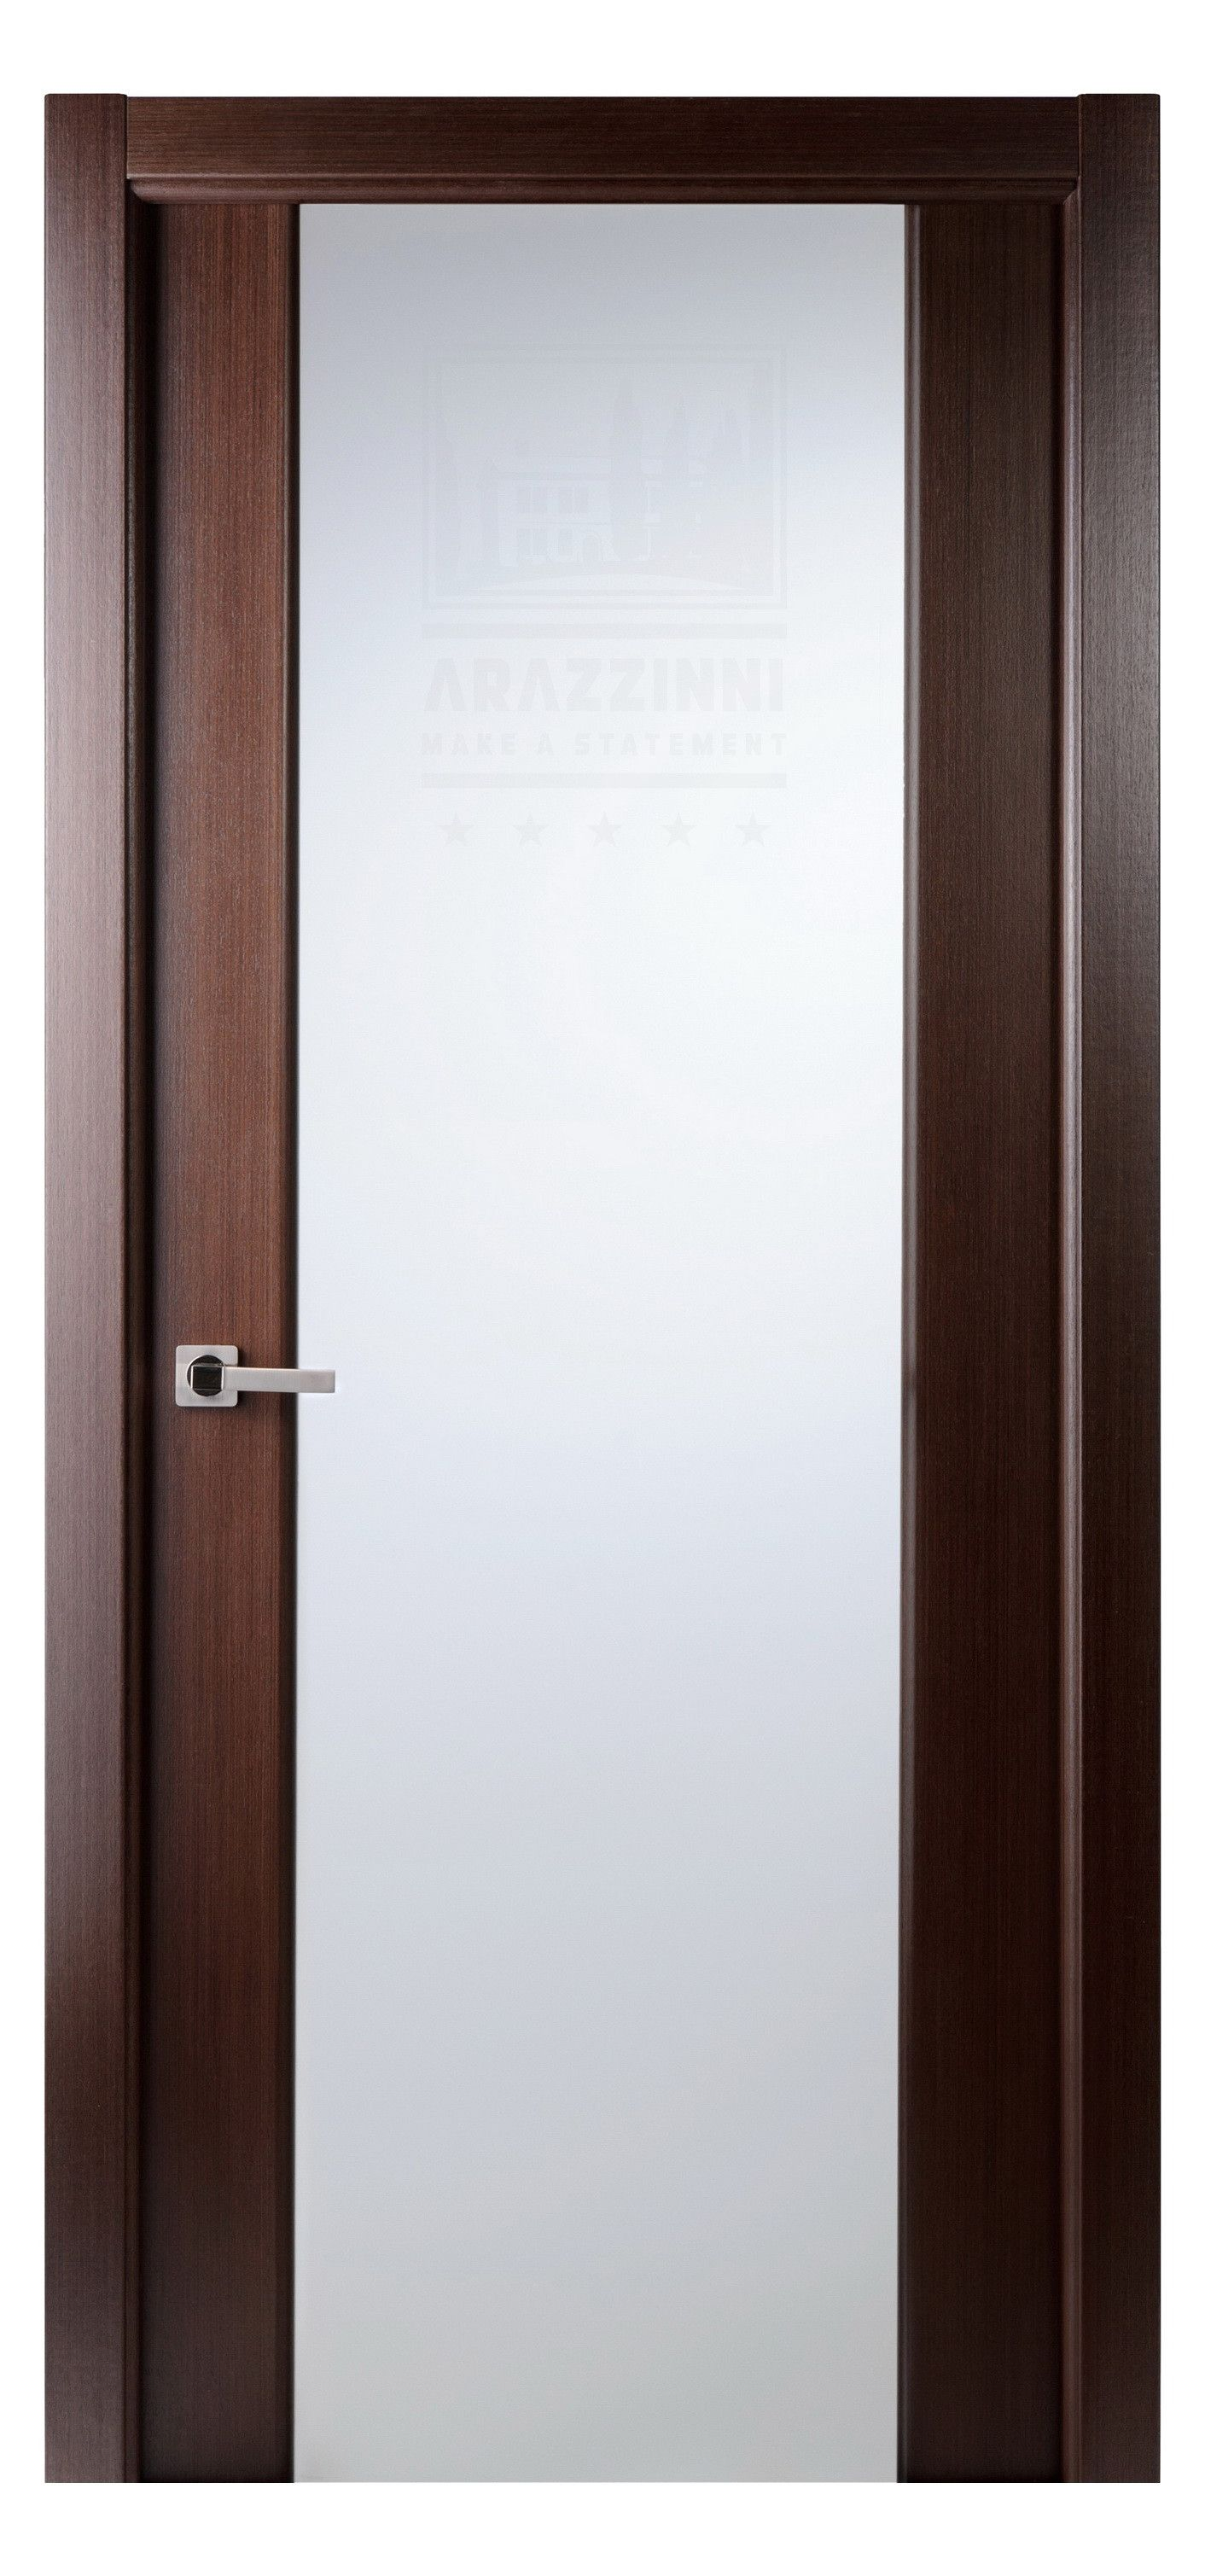 Arazzinni grand 202 interior door in a wenge finish doors and arazzinni grand 202 interior door is a great door for a bedroom bathroom or even an office because of its tempered glass this lightweight door provides planetlyrics Choice Image